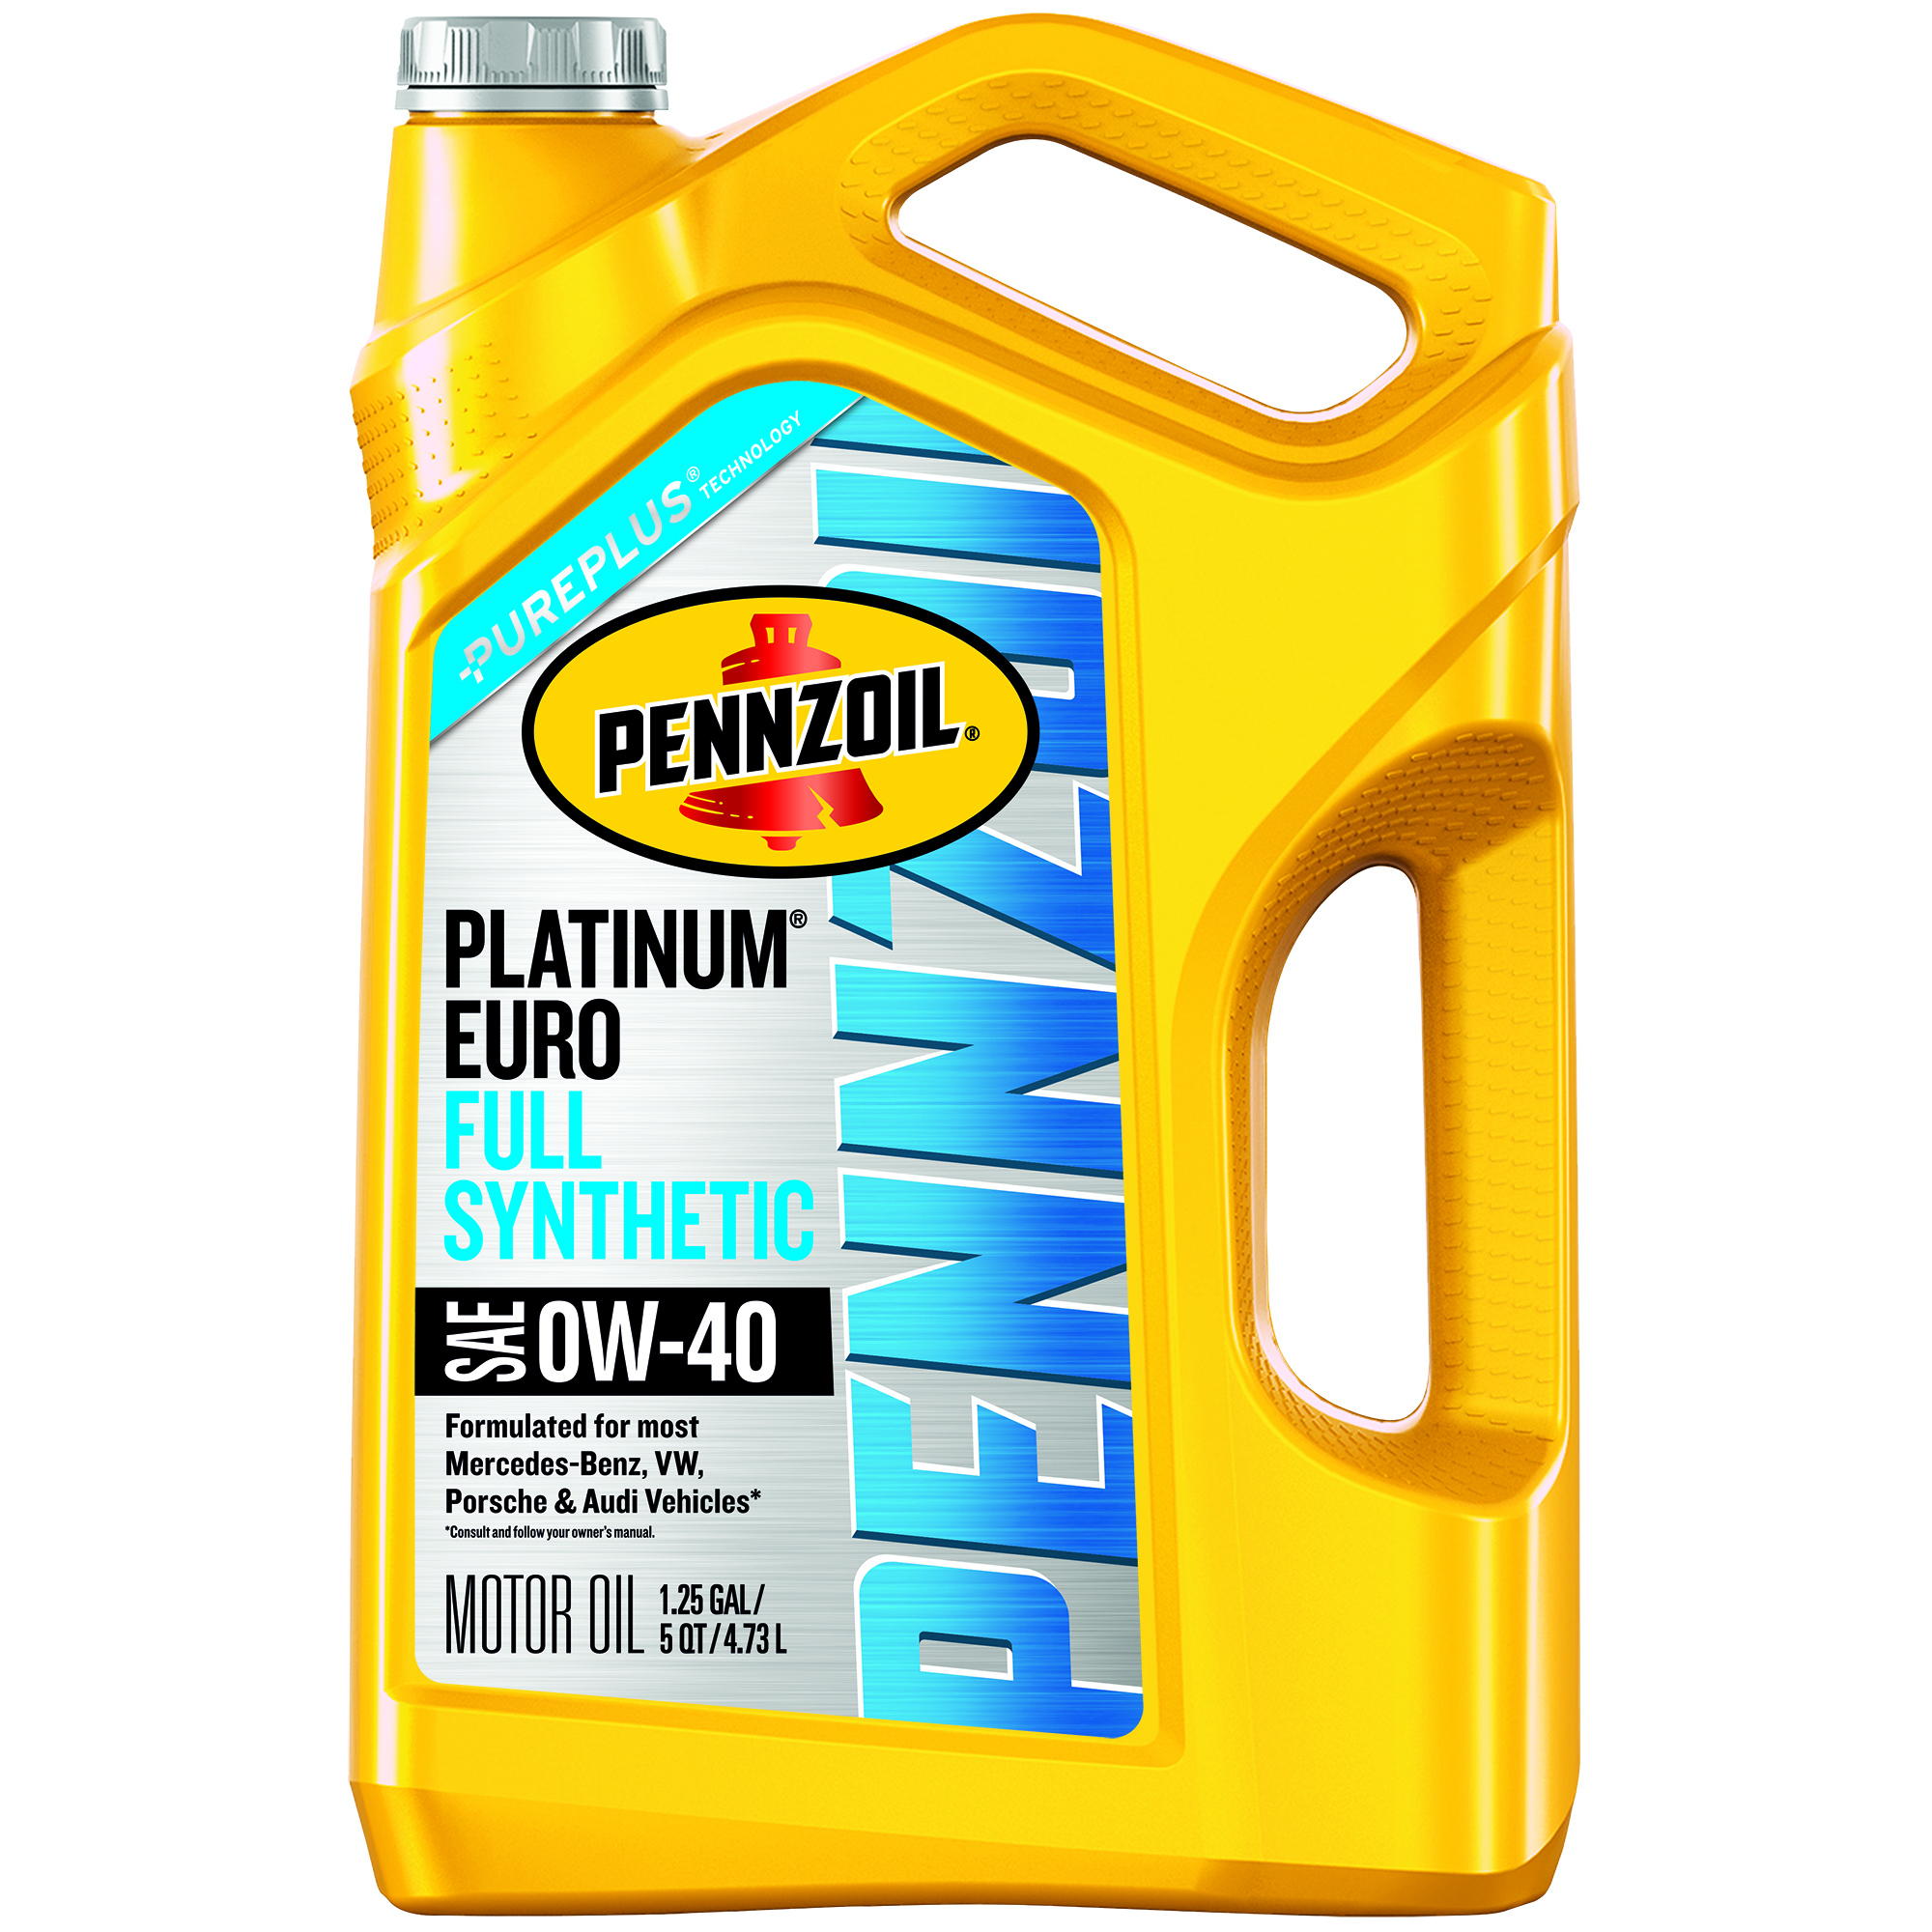 Pennzoil Platinum Euro 0W-40 Full Synthetic Motor Oil, 5 qt